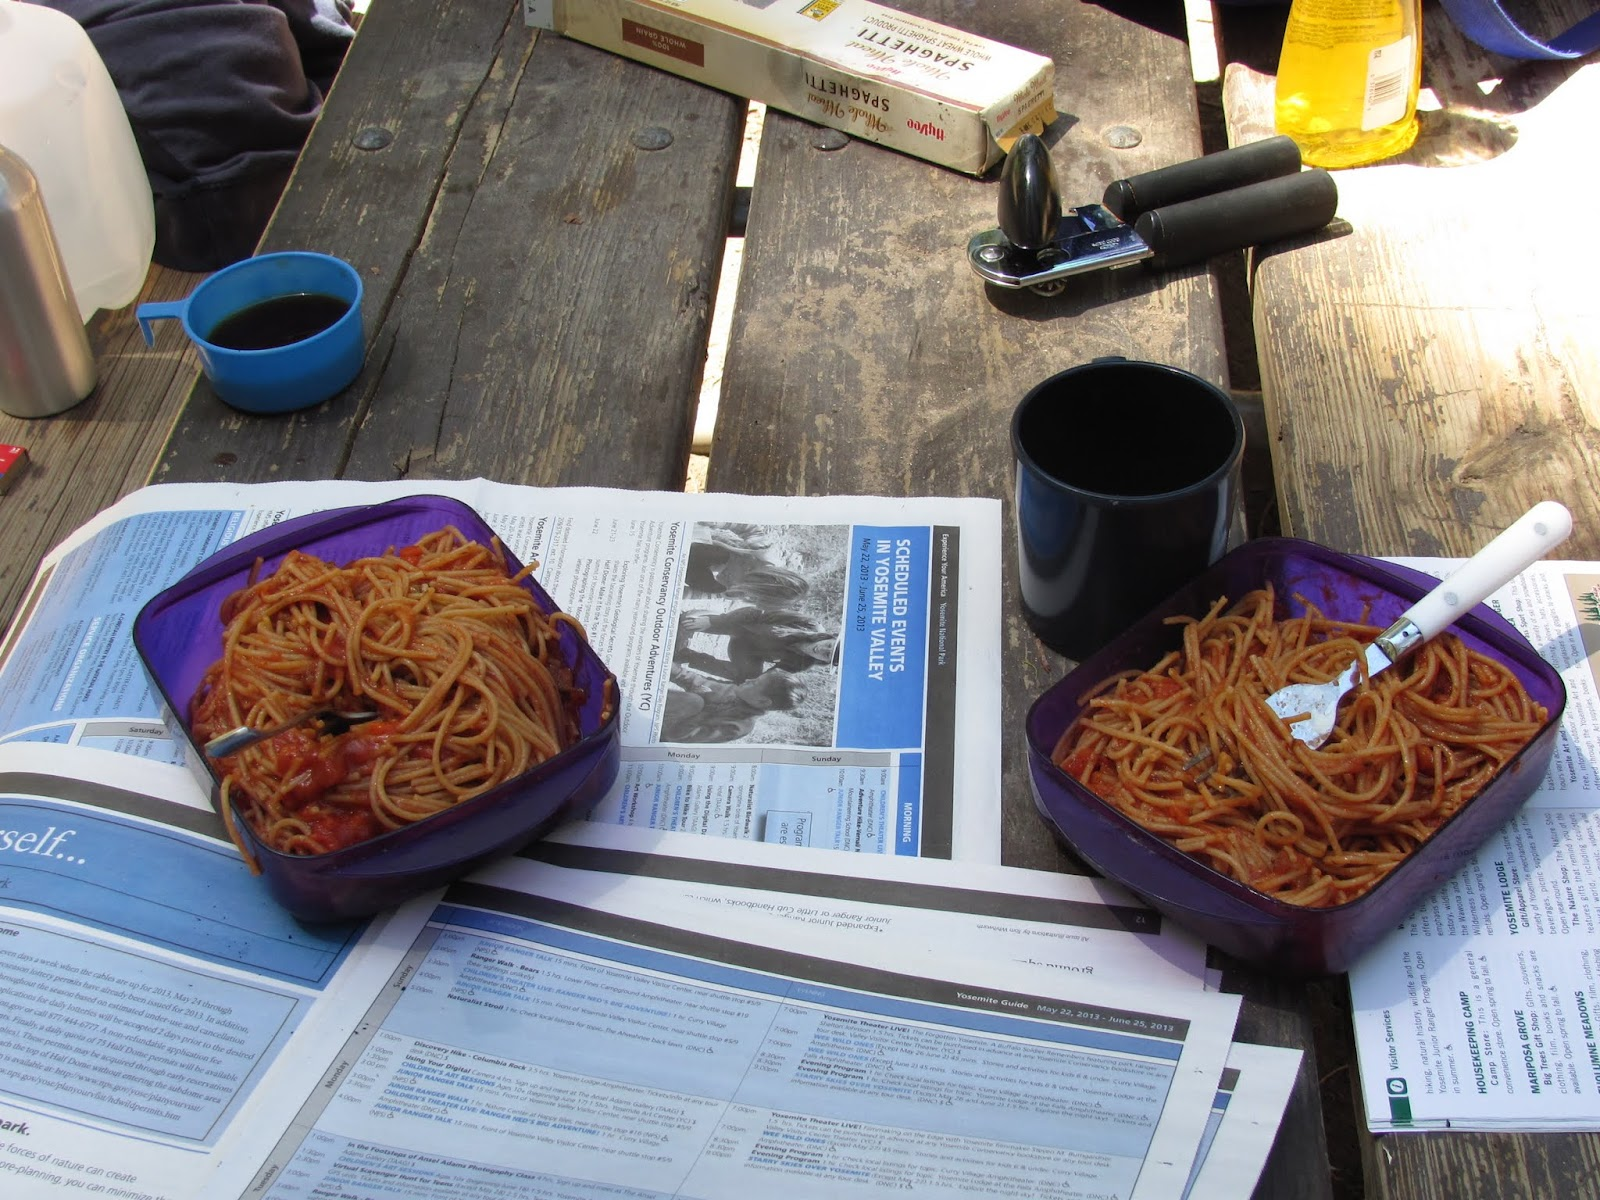 Bowls of spaghetti and park pamphlets cover the picnic table at Yosemite National Park, California